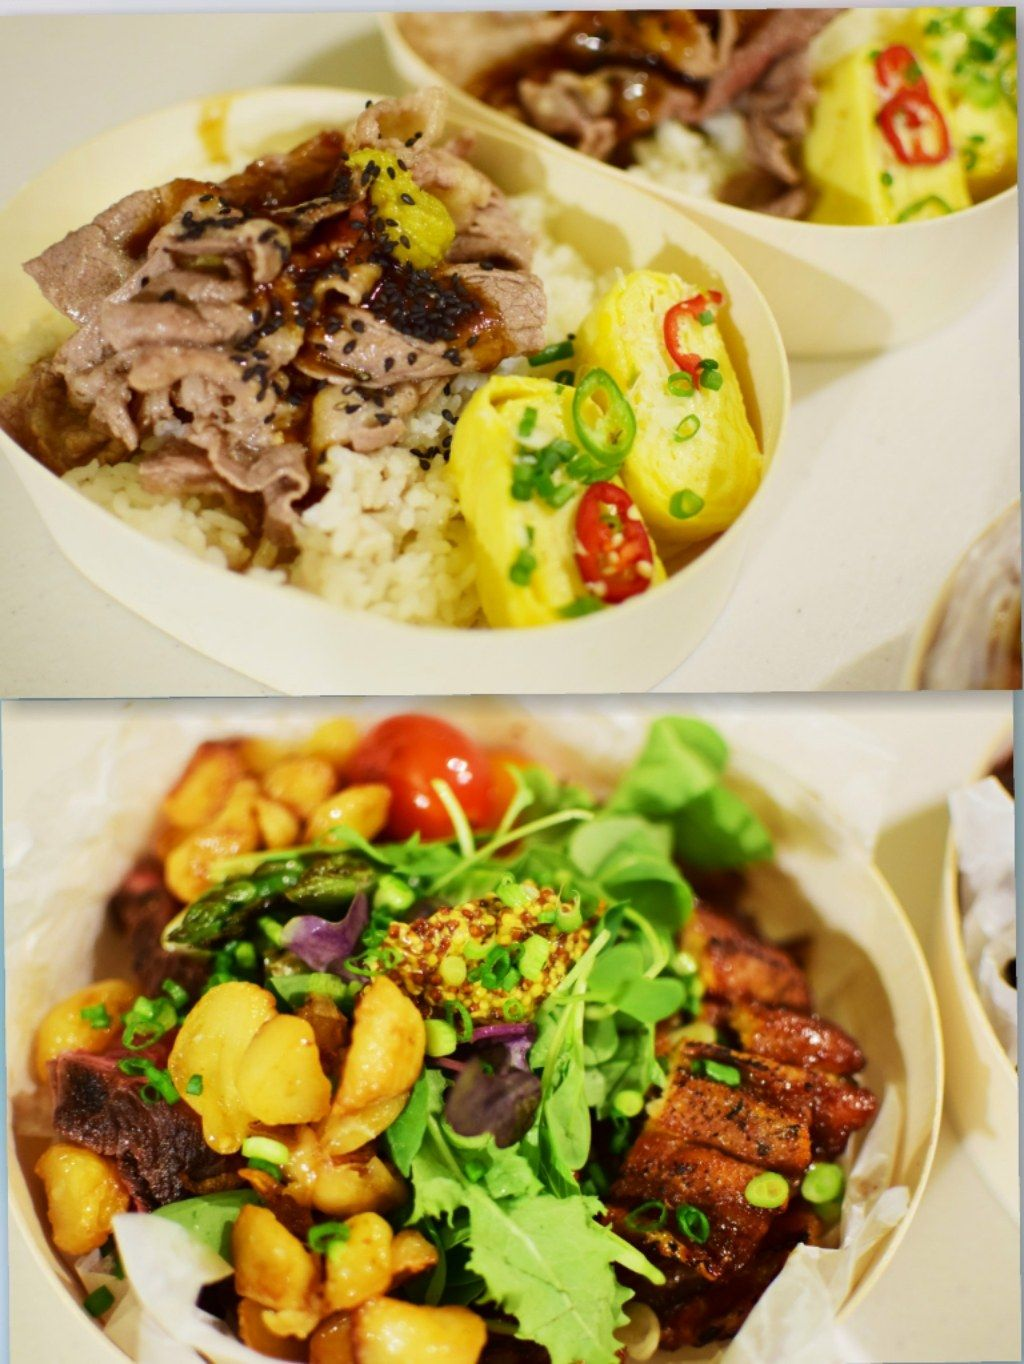 Photos of the support tribute meals ordered and prepared by Mino's fansite for both MOBB rappers. / Pann